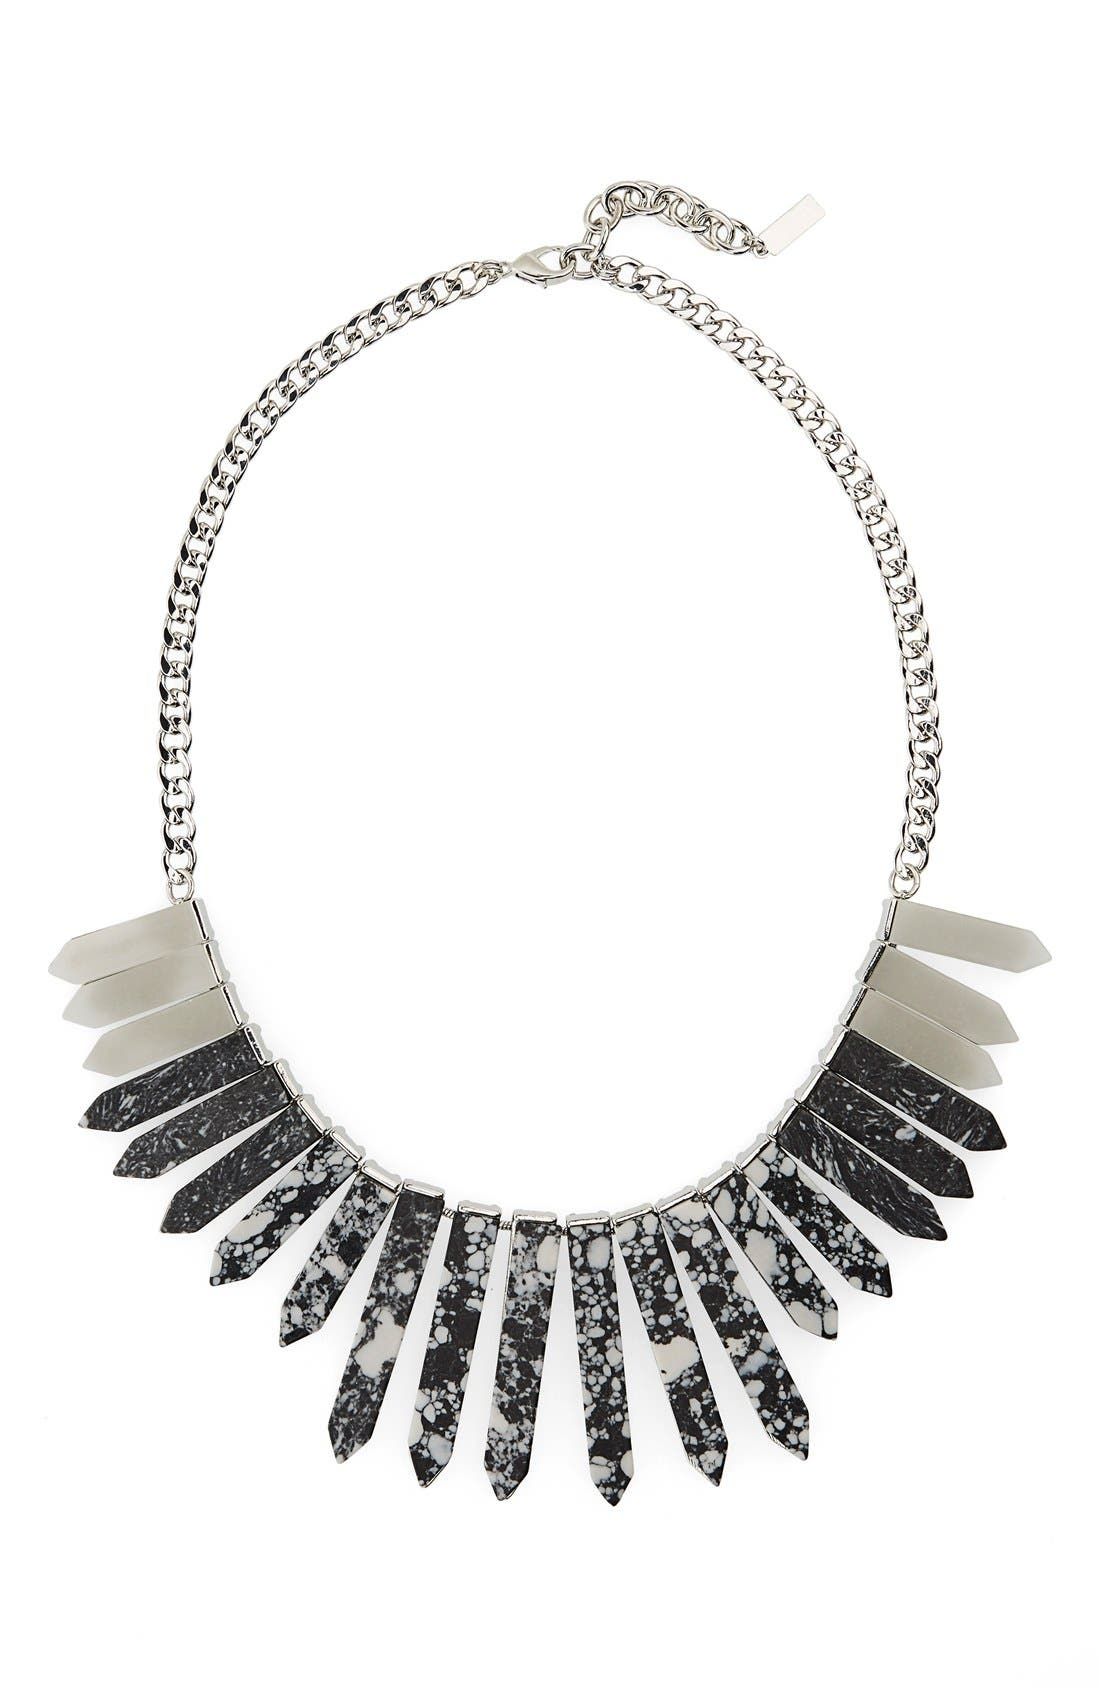 Alternate Image 1 Selected - BaubleBar 'Marble Ra' Bib Necklace